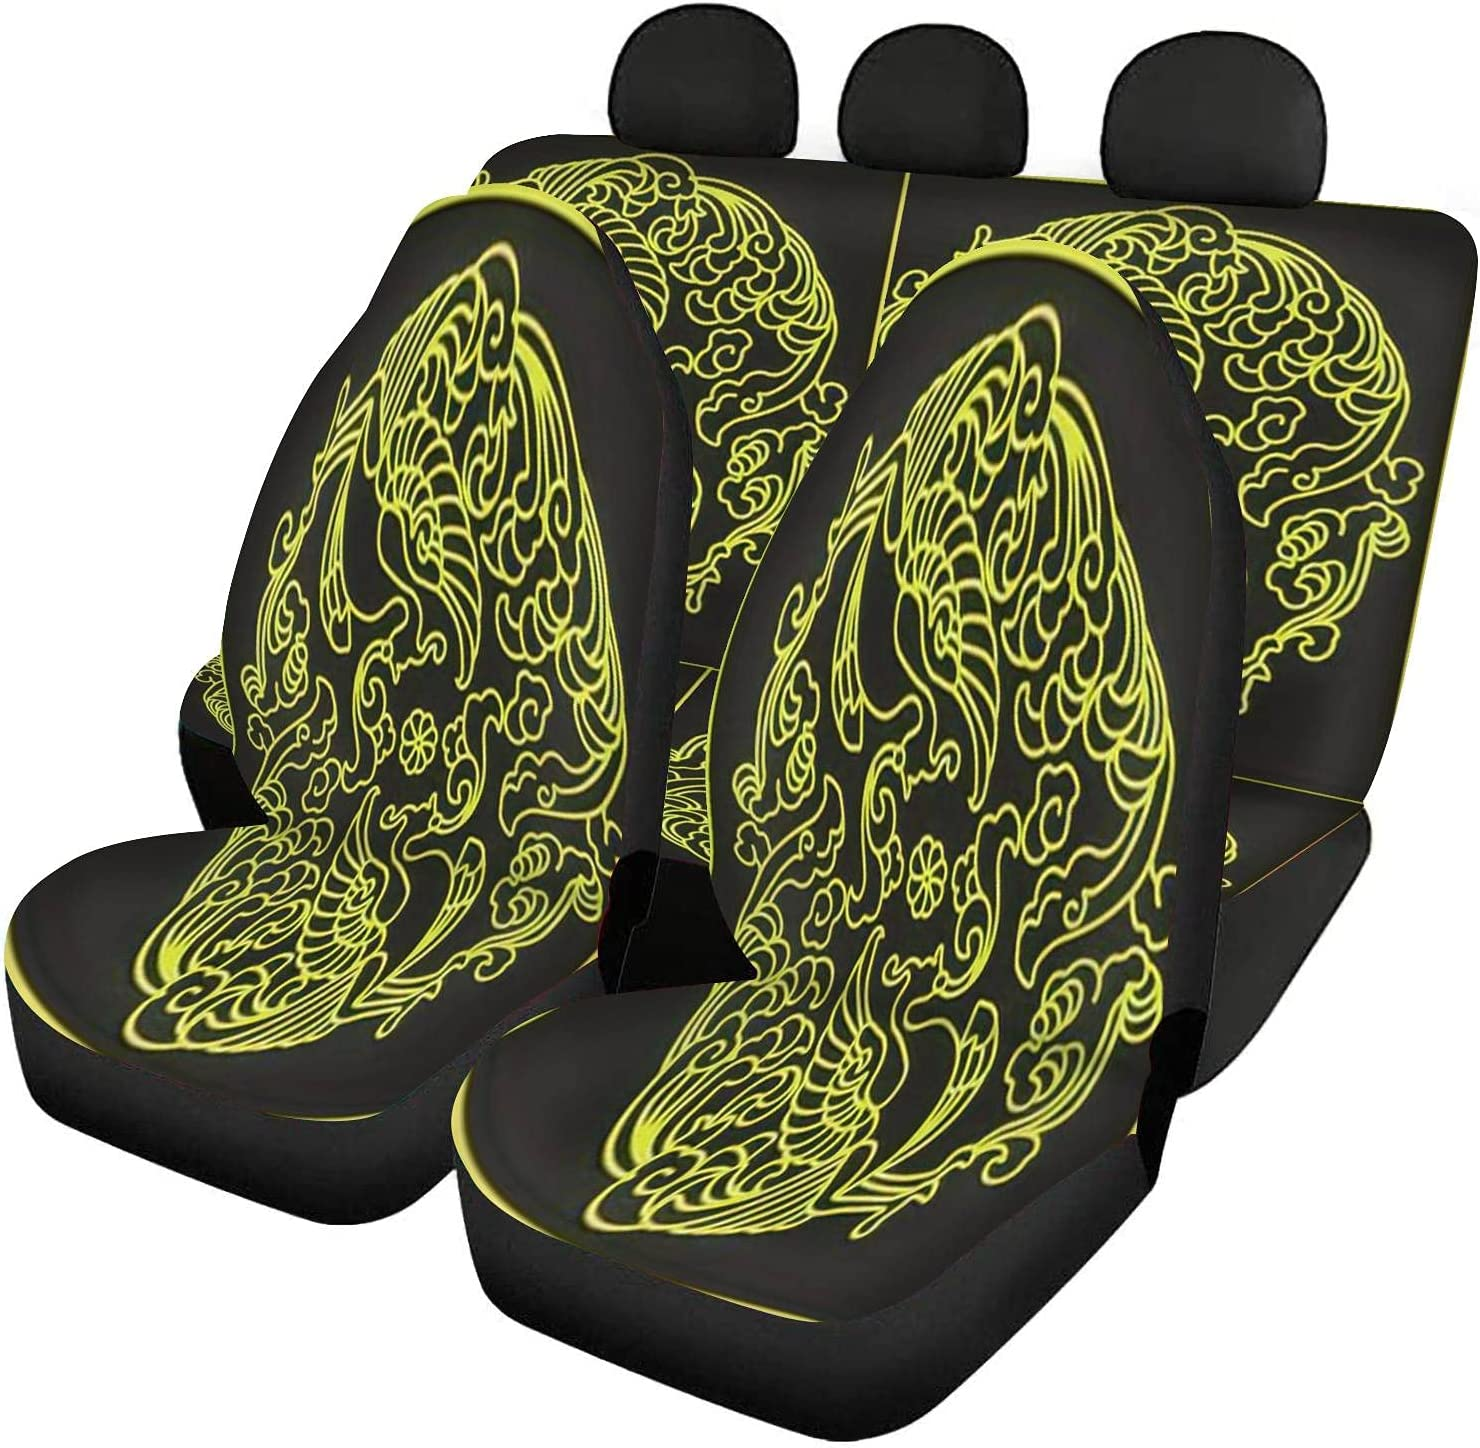 Max 68% OFF GDSJEGQM Car Seat Covers Full Set Round Chinese Traditional - trend rank Ph